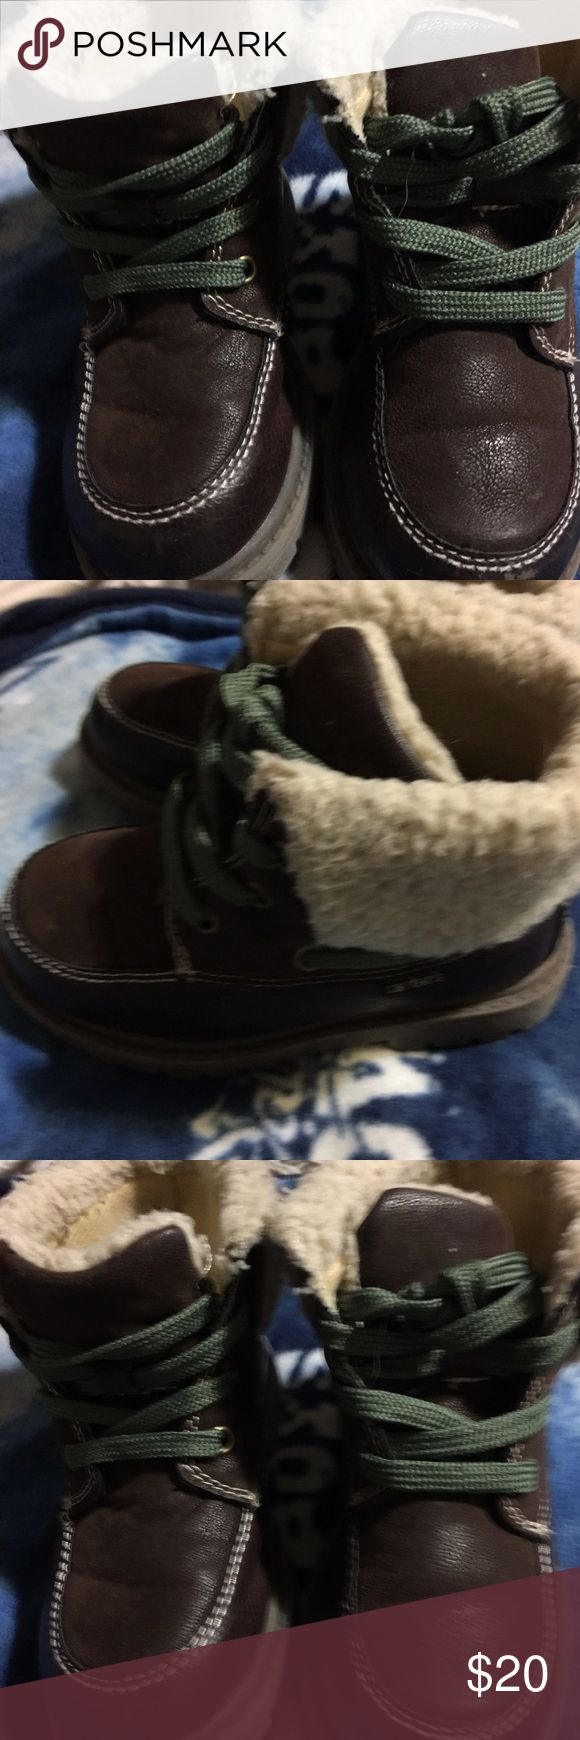 Boys high top boots Brown with green laces fur around the top EUC size 10 carters Shoes Boots